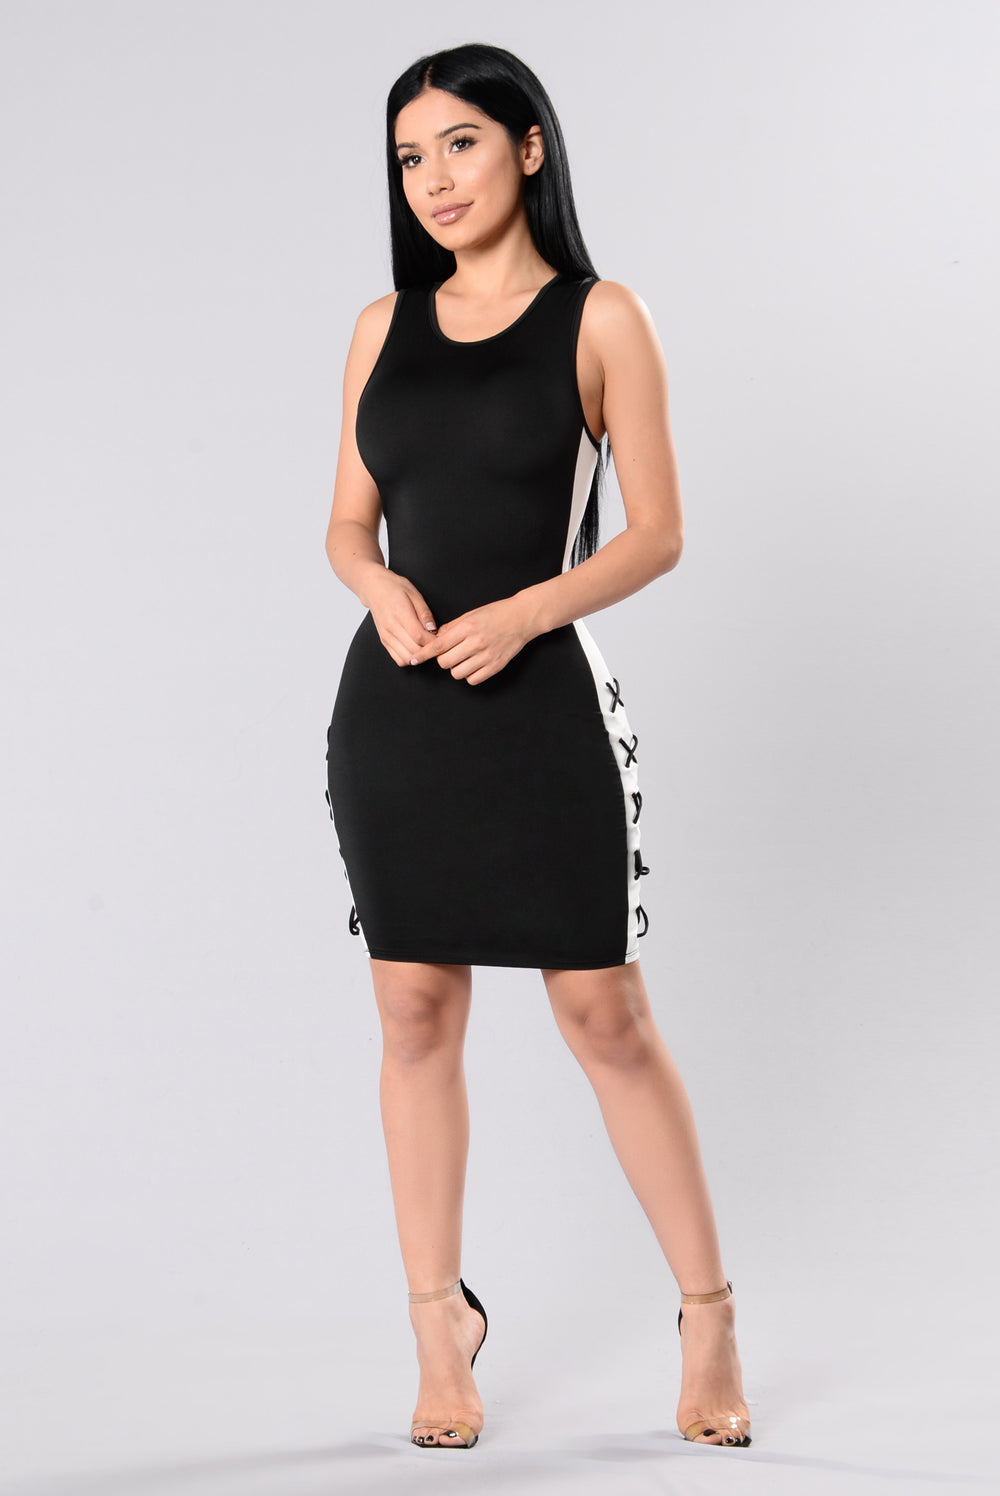 How Did We Get Here Dress - Black/White